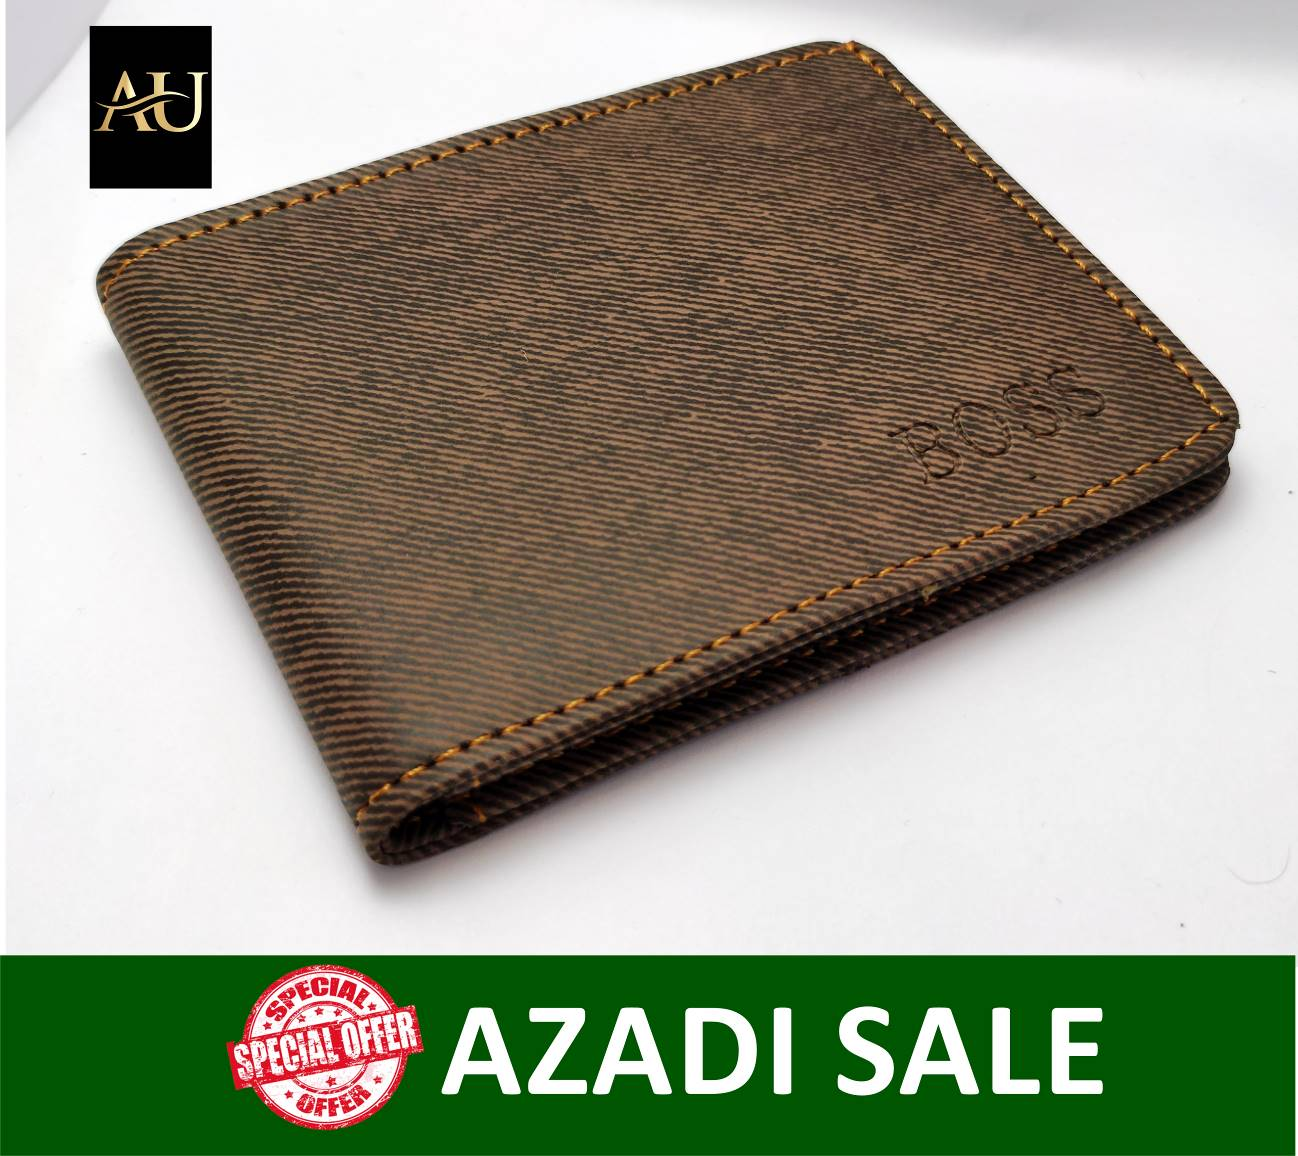 Slim wallet mini small wallet for boys, men stylish small wallet card holder for Students | BLUE CAMEL COFFEE BROWN